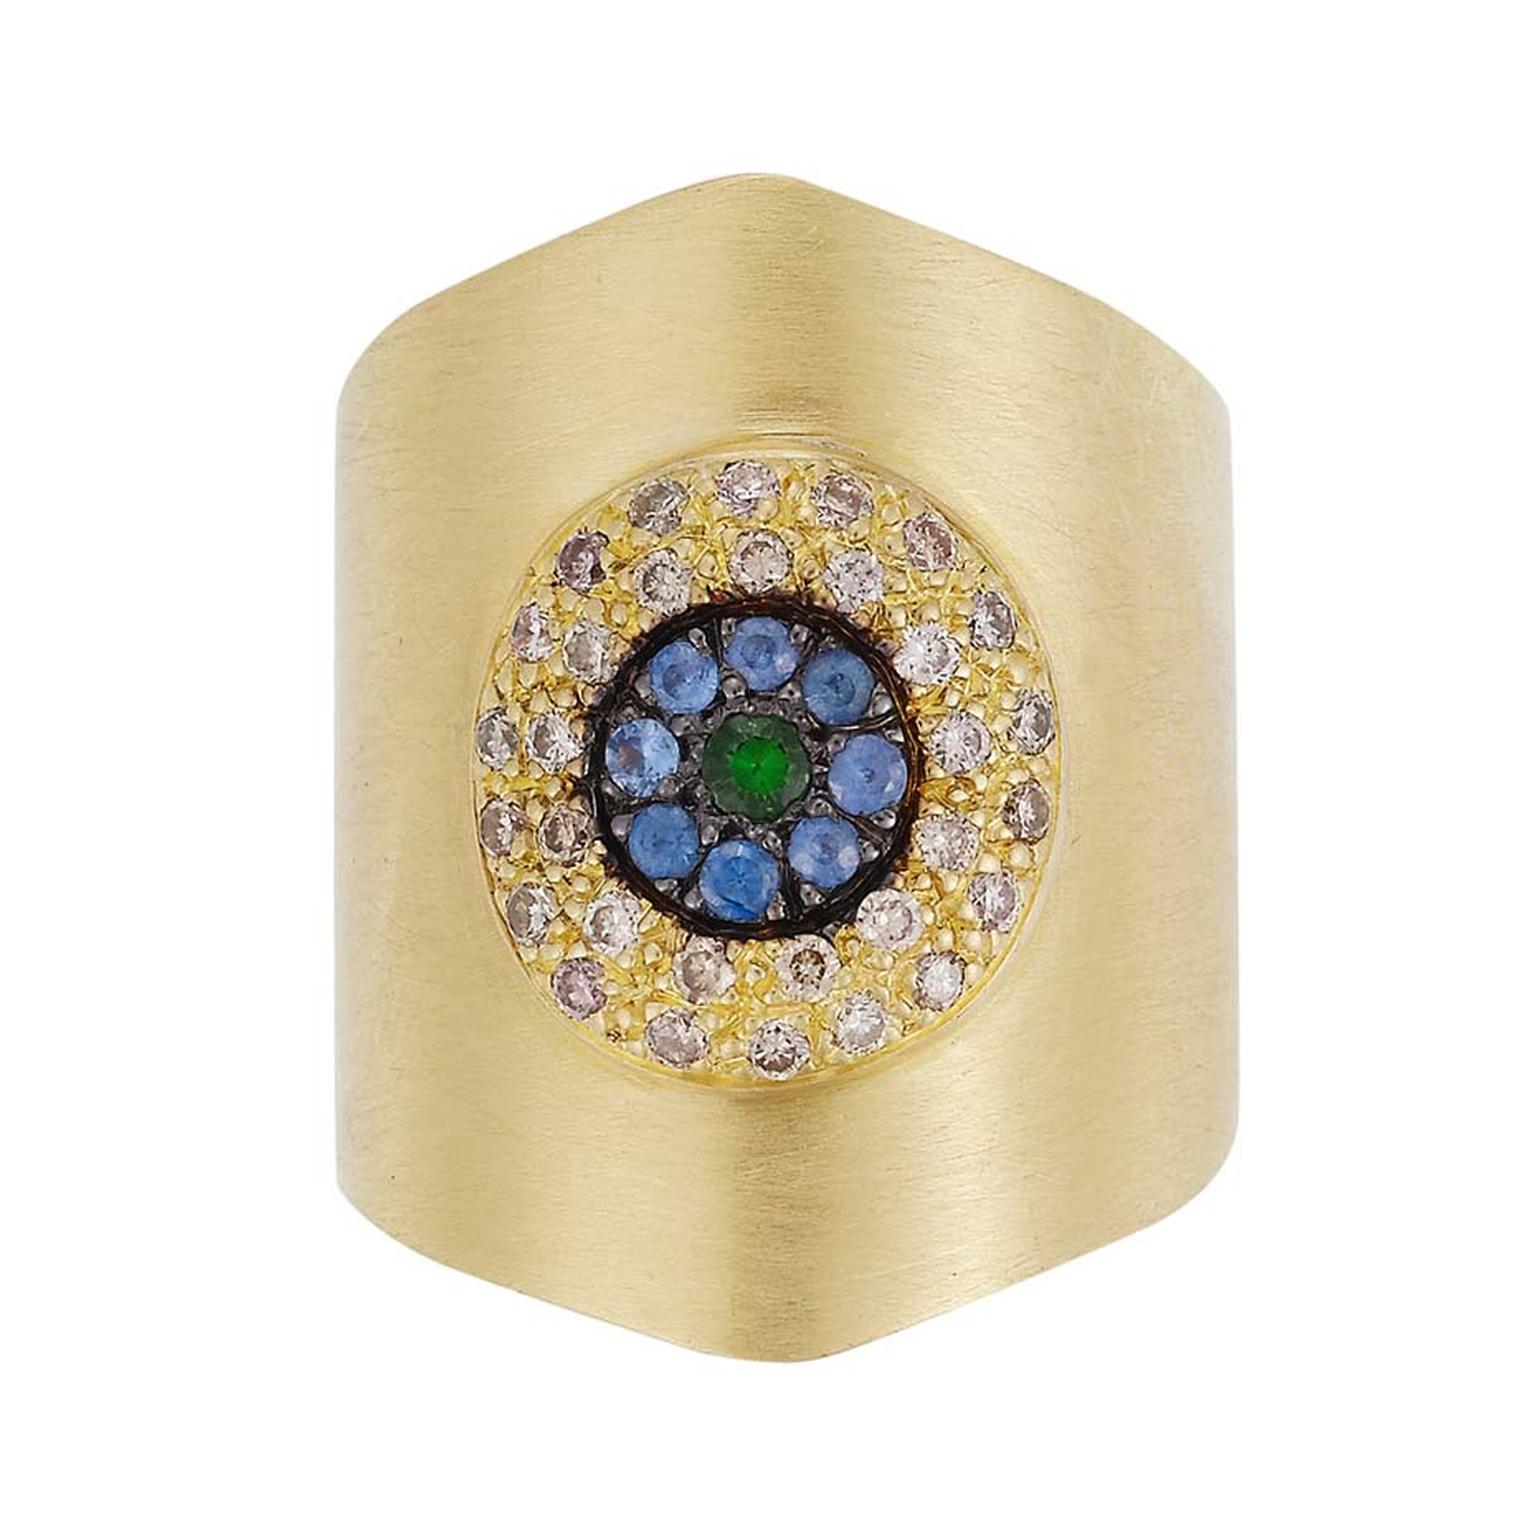 Ileana Makri Round Eye Shield ring in yellow gold with champagne diamonds, blue sapphires and a tsavorite center ($4,660).